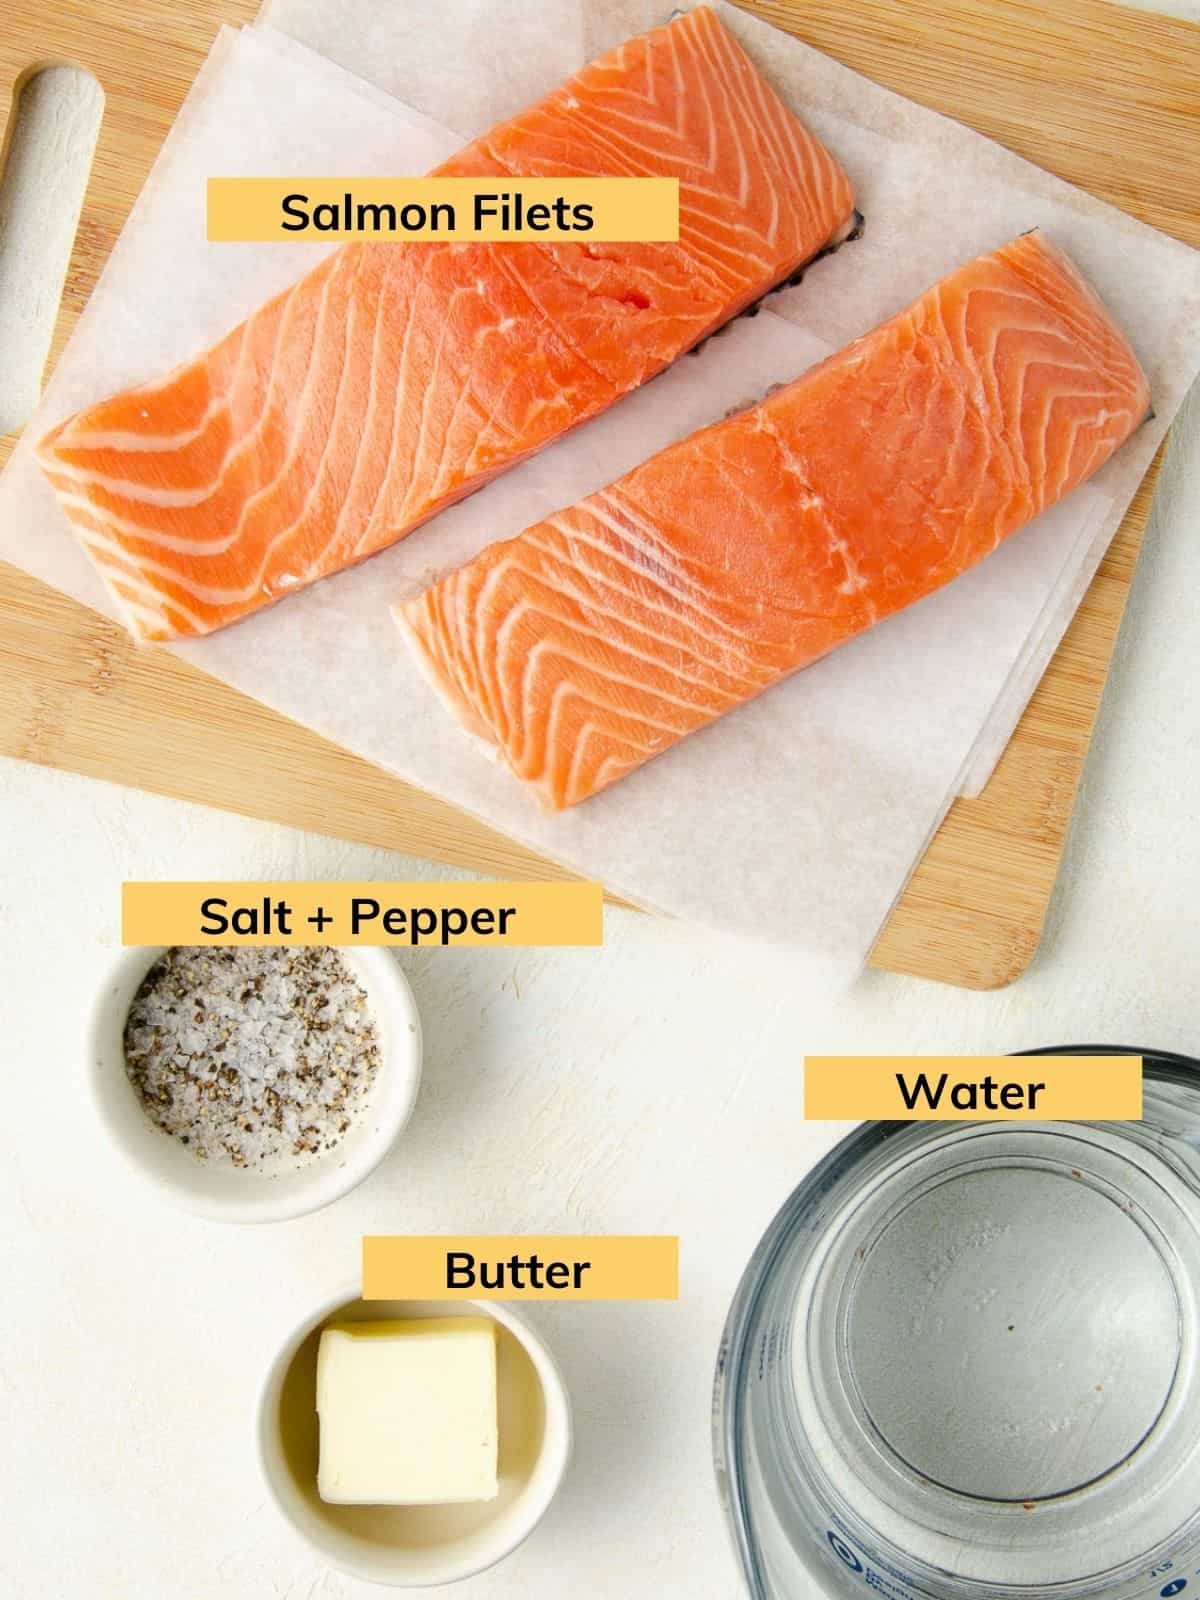 Two filets of salmon on a cutting board next to water, salt, pepper and butter.